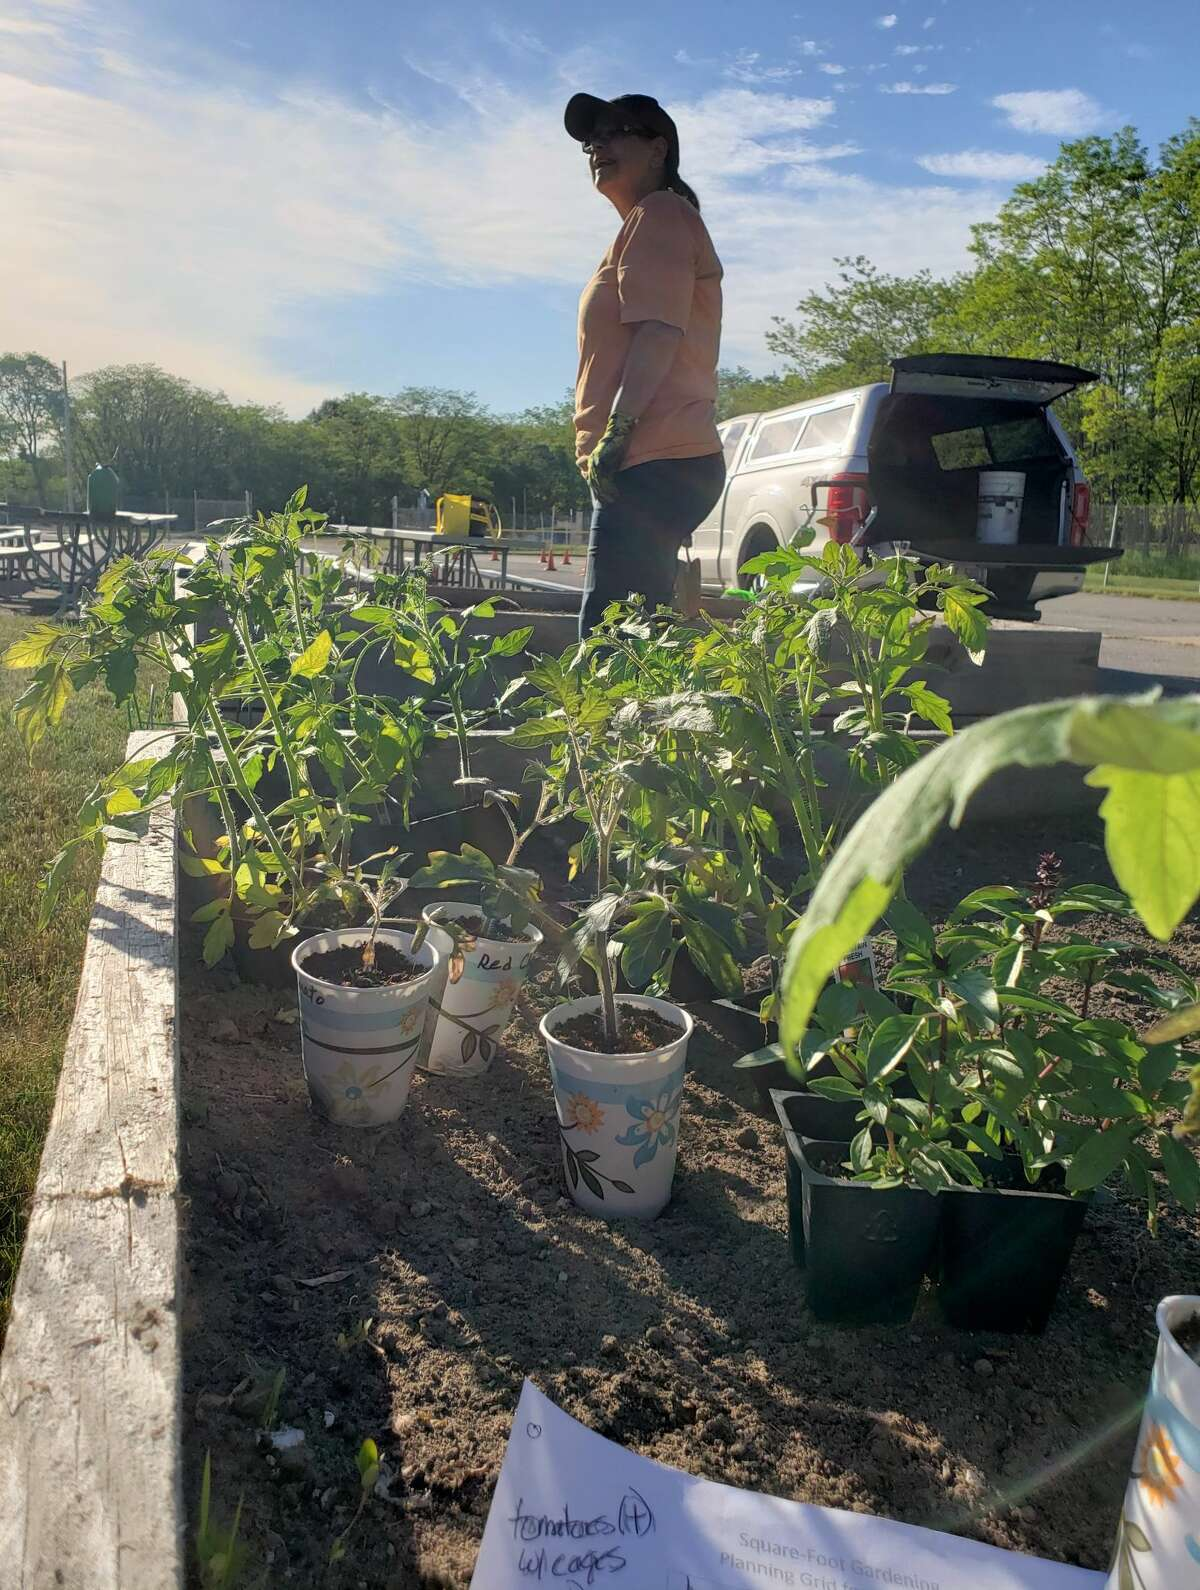 Volunteers could be seen tilling, weeding, planning and planting in the raised garden beds at the Armory Youth Project early Tuesday morning before the temperatures reached the 80s on First Street. The Armory Youth Project is working on a gardening-for-pantries project alongside Spirit of the Woods Garden Club and the Manistee County Community Foundation.